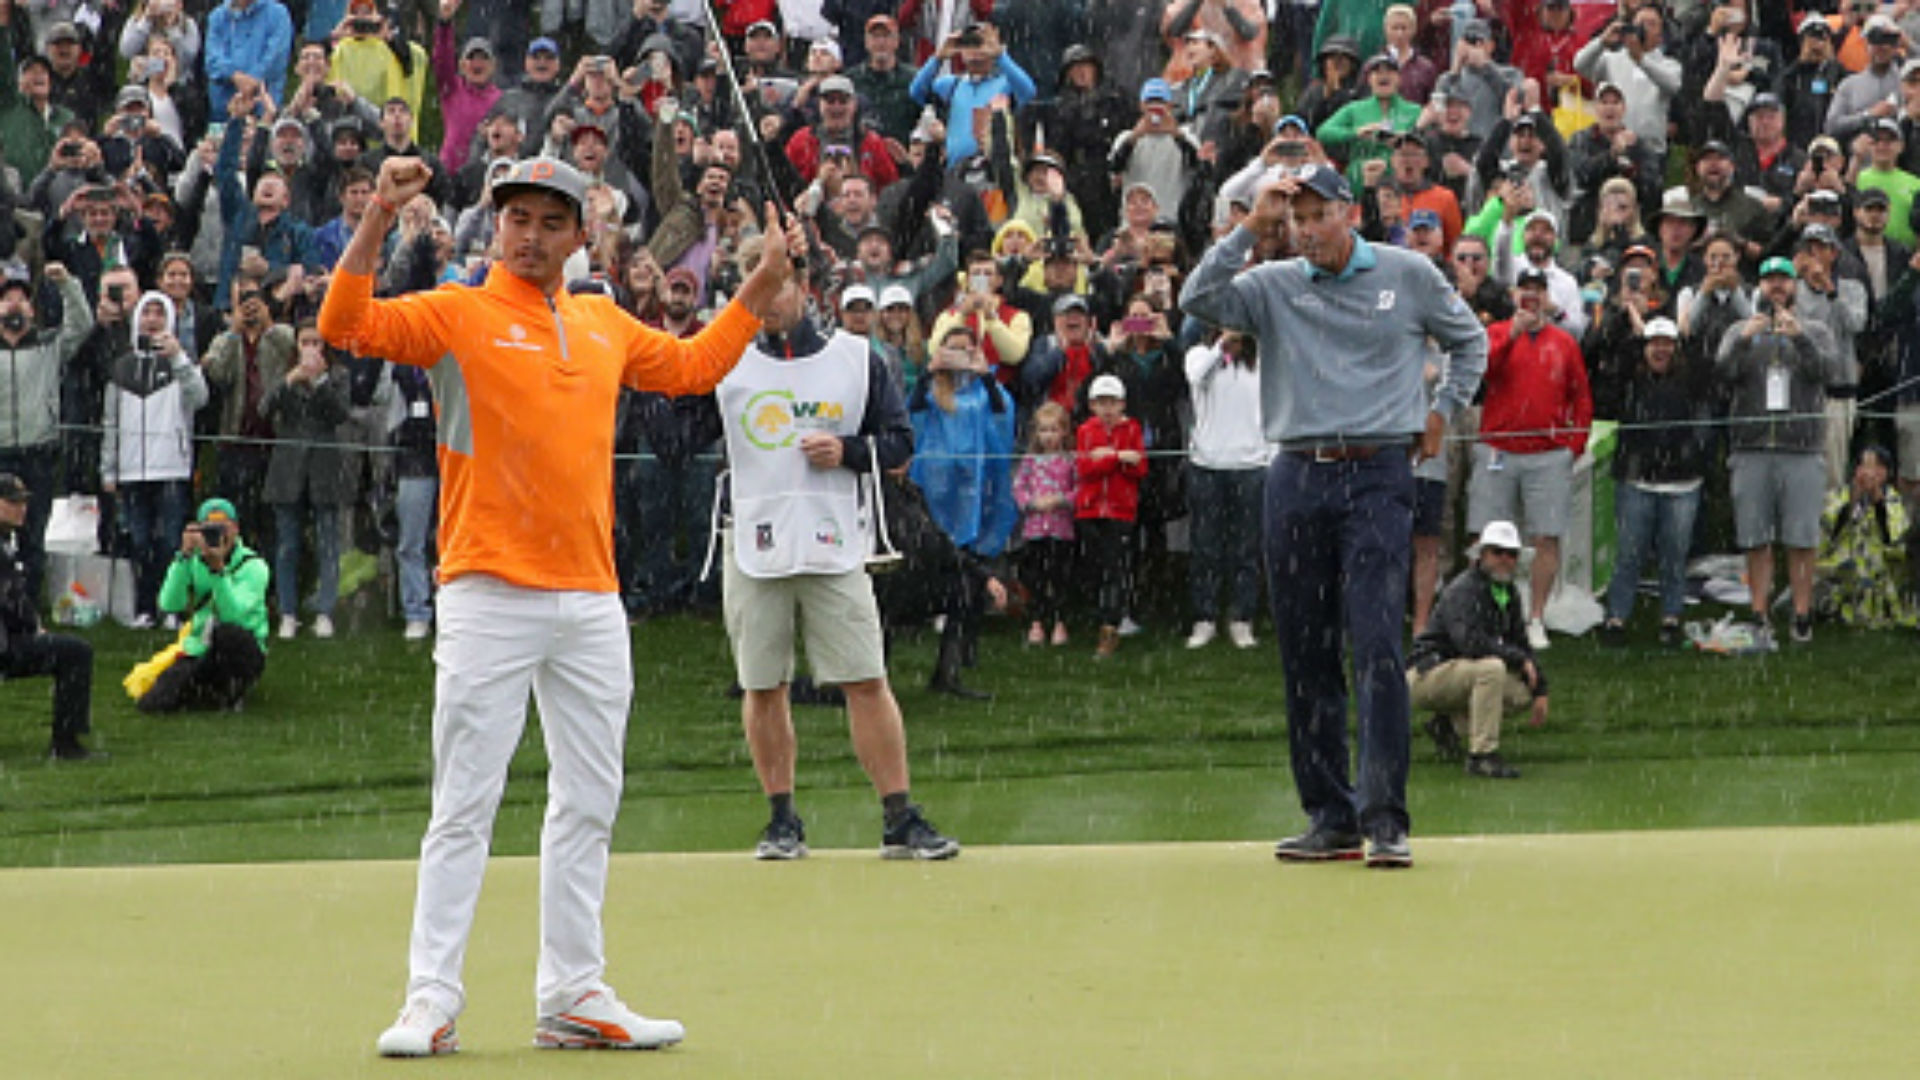 Phoenix Open: Rickie Fowler secures win despite final round struggles